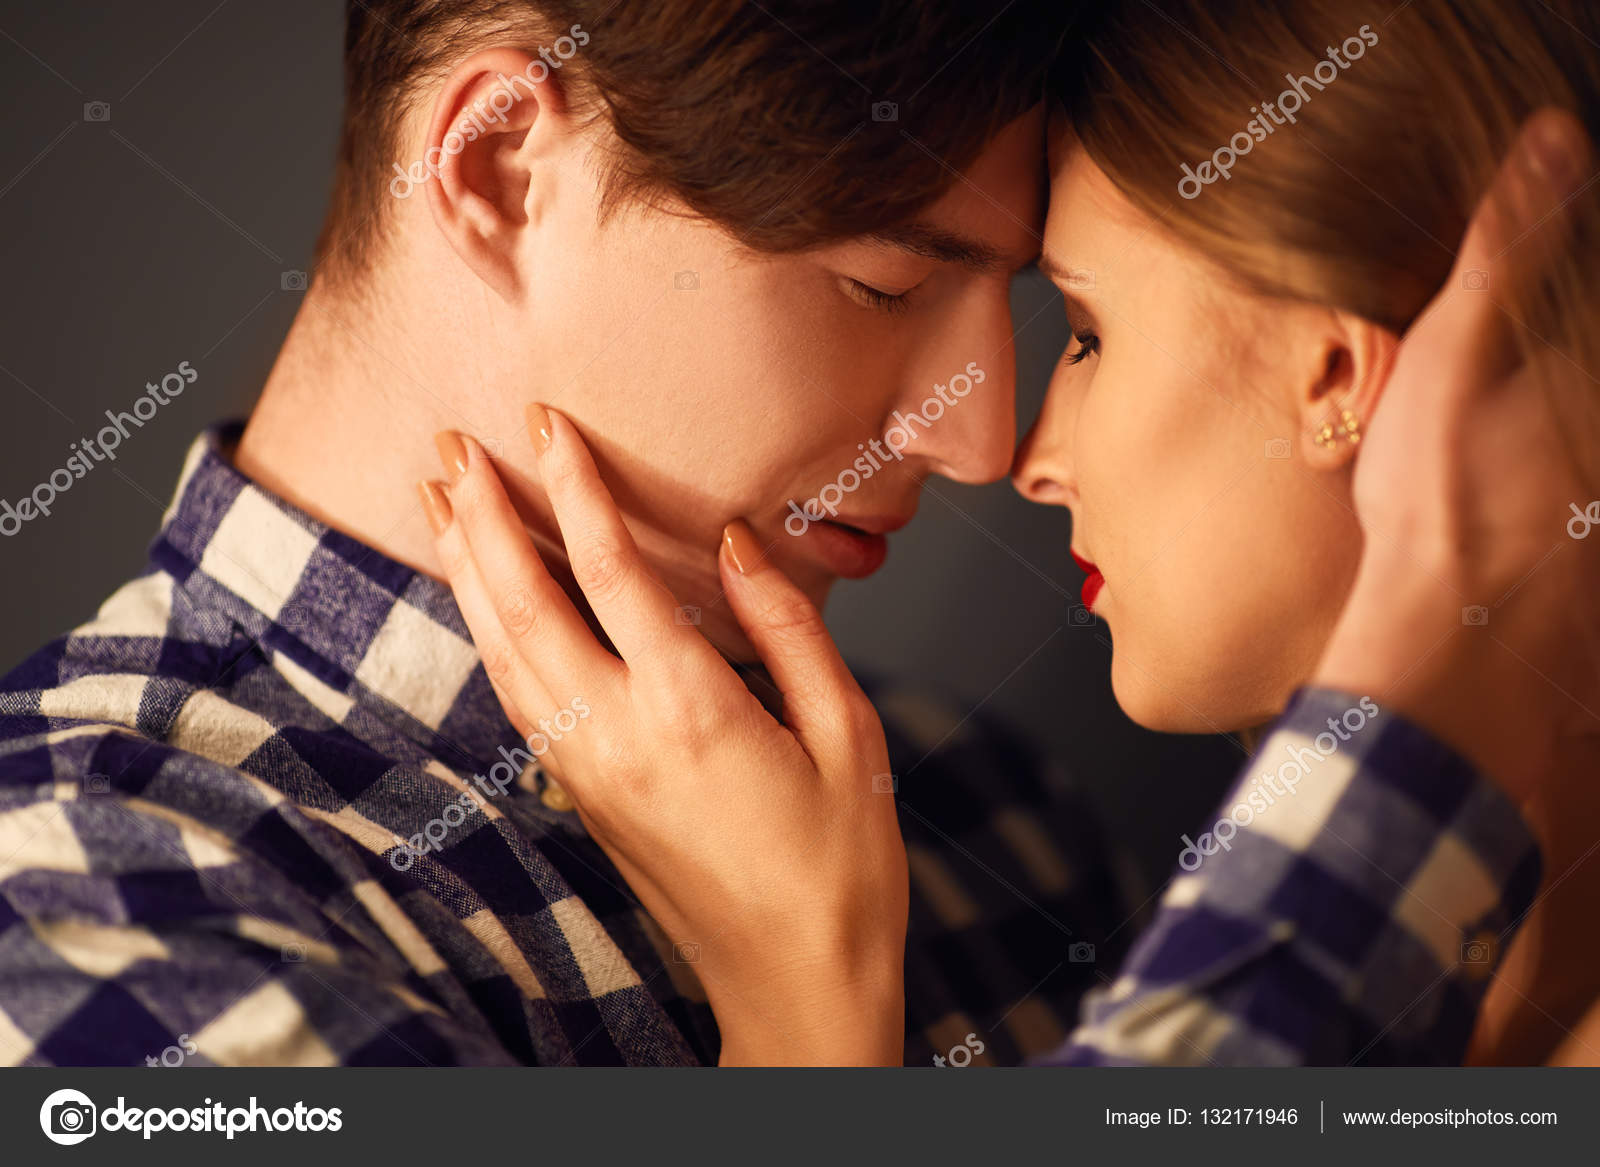 Hot sexy couple kissing are